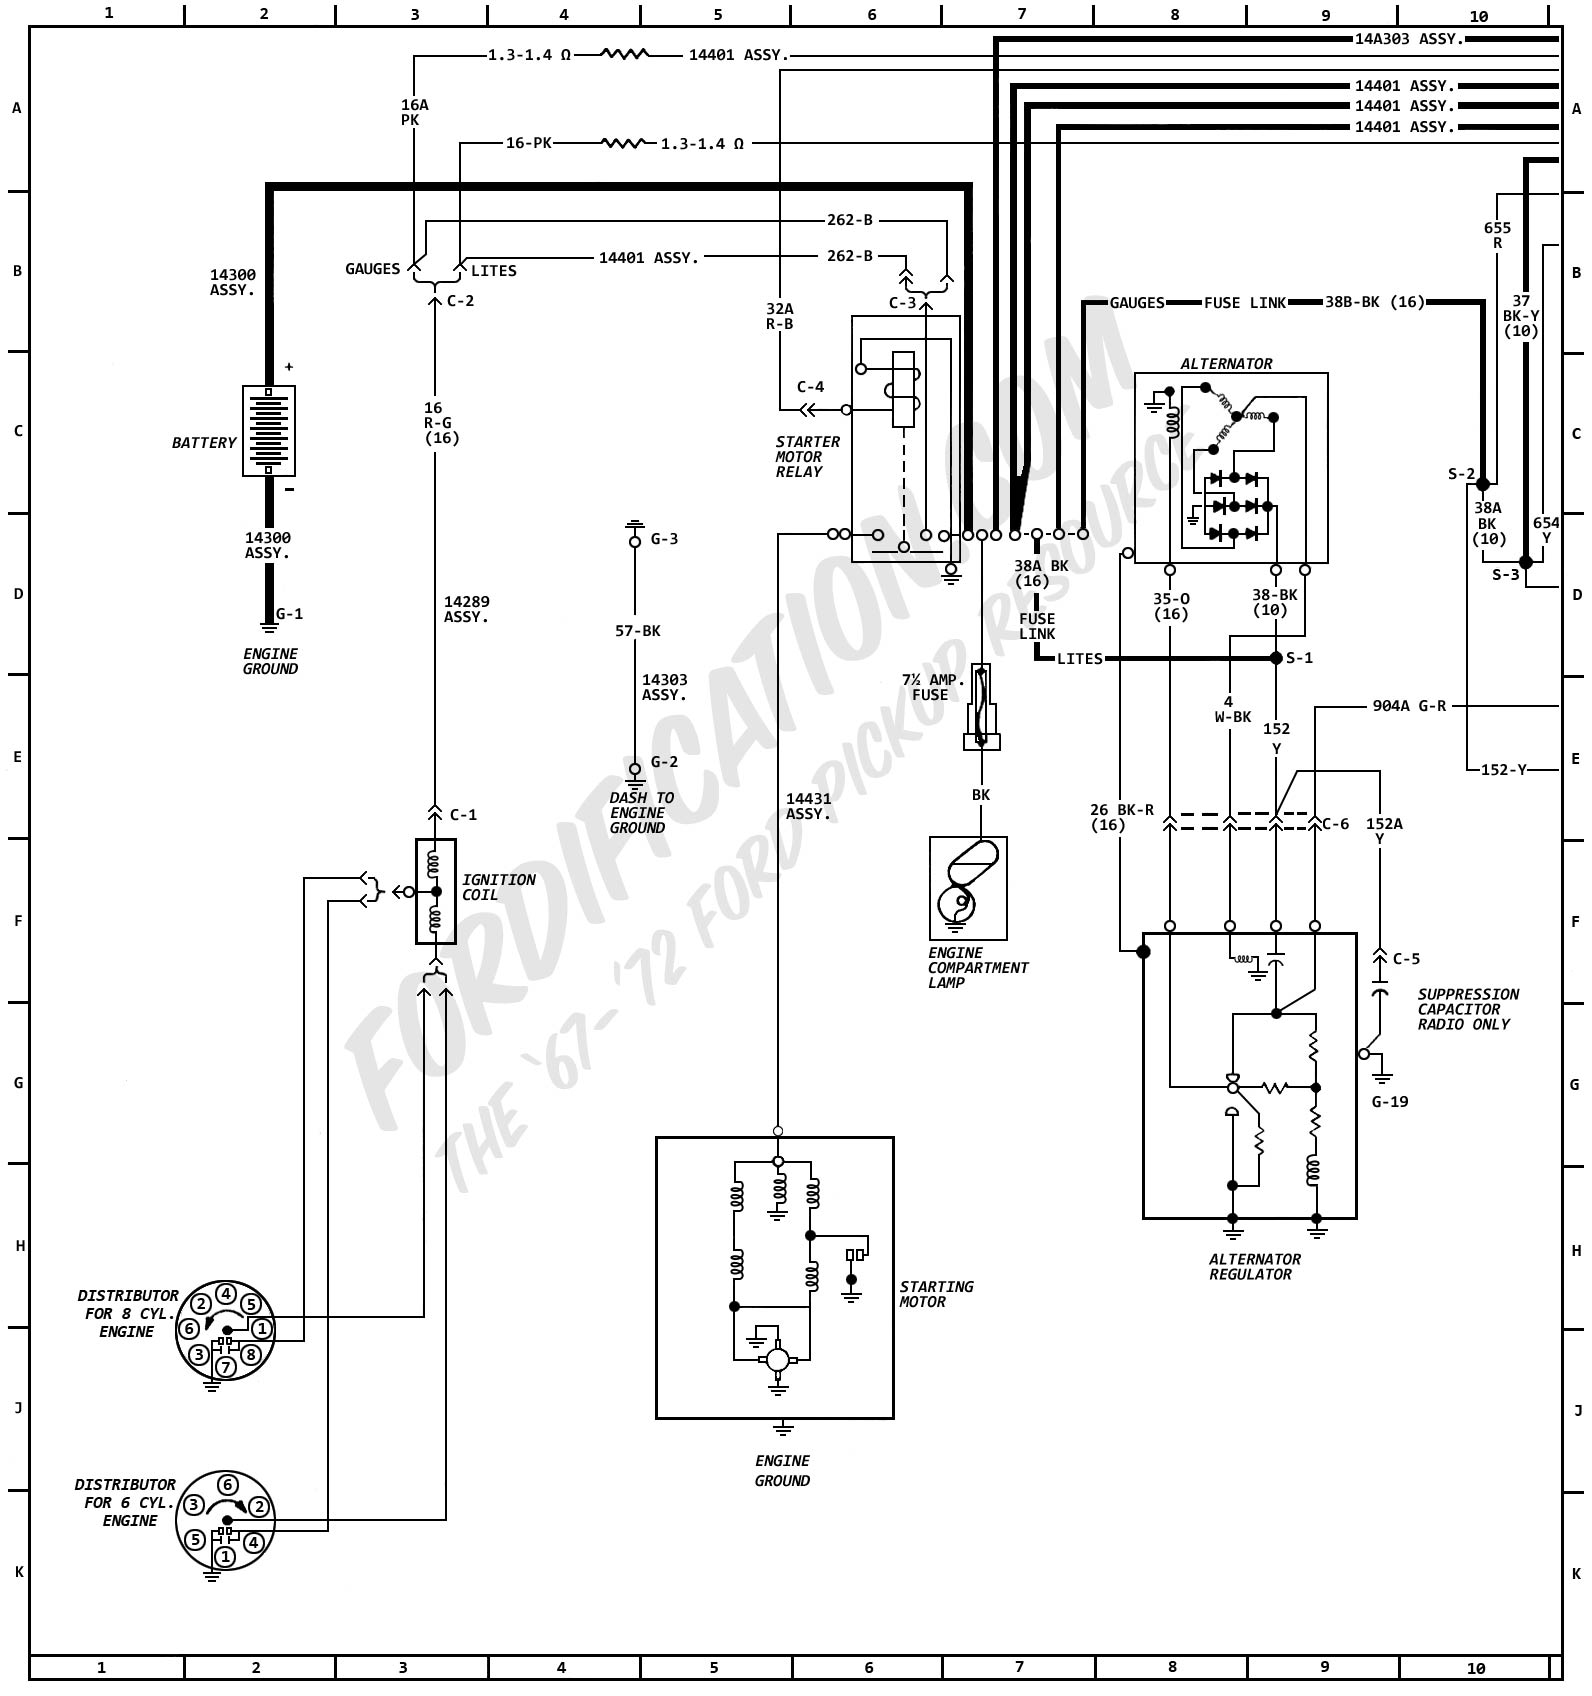 Wiring 1972master: 1972 Ford F100 Turn Signal Wiring Diagram At Galaxydownloads.co